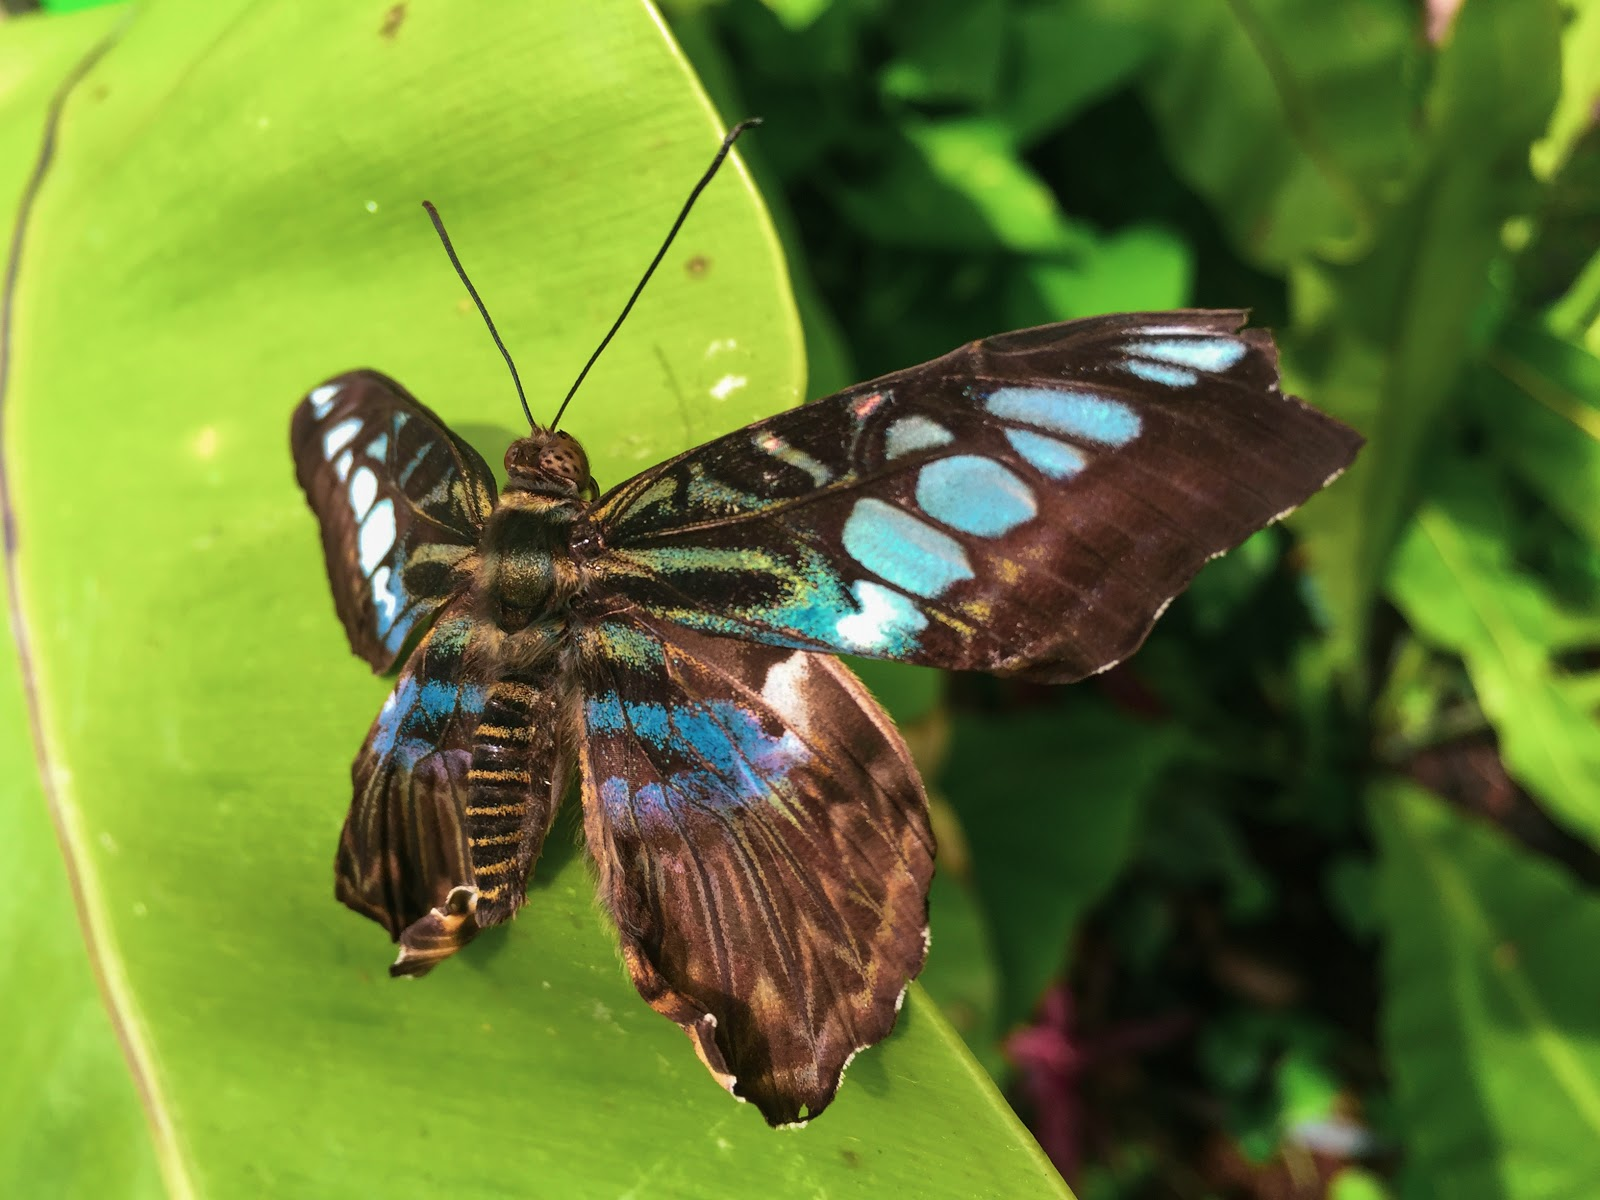 atrium-on-leaf-butterfly-images